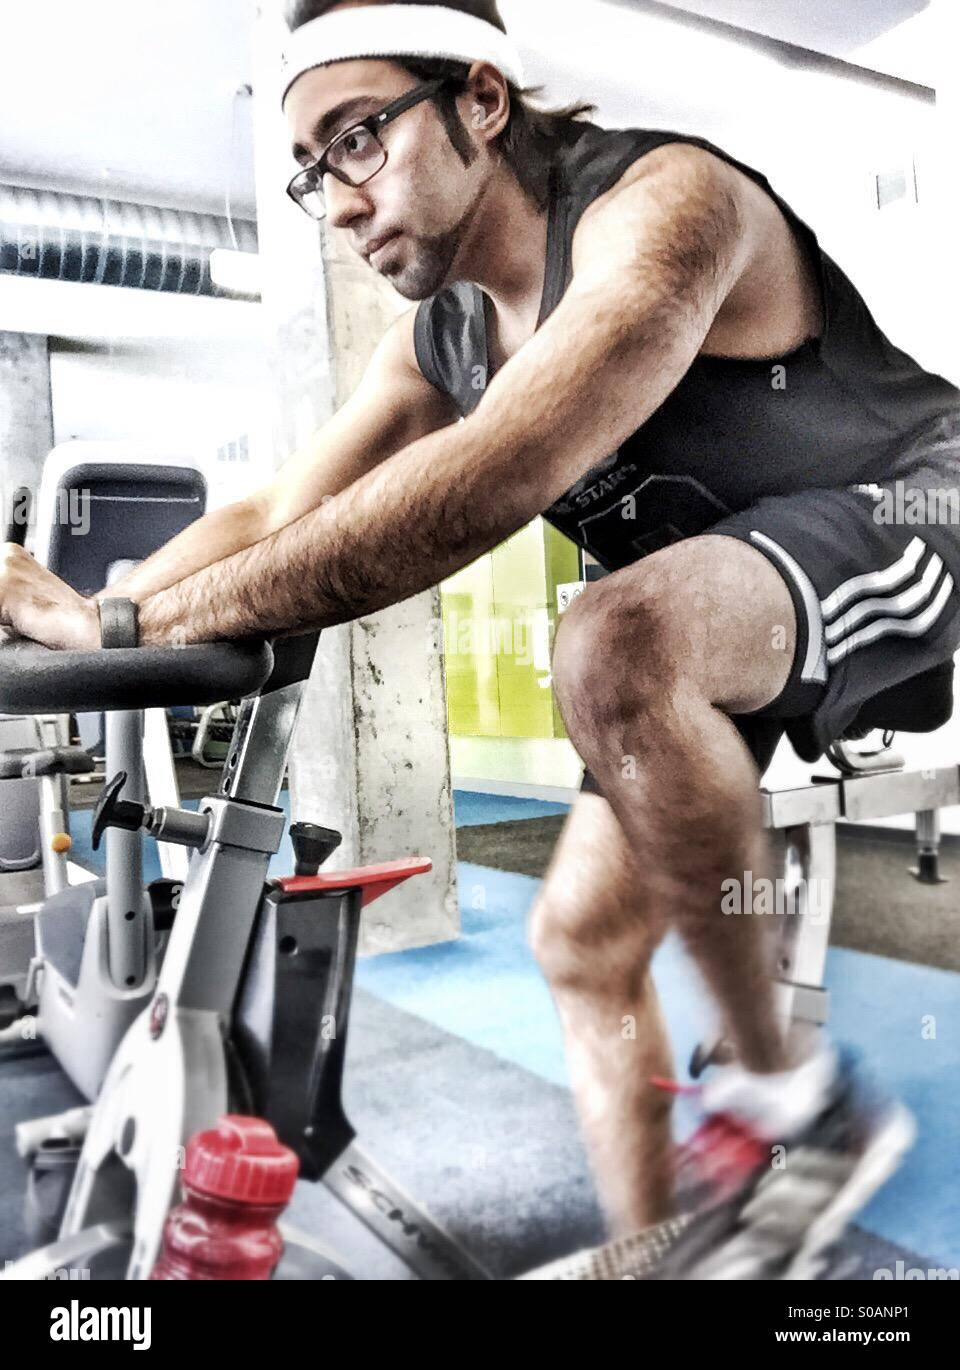 A guy at the gym on a stationary bike - Stock Image